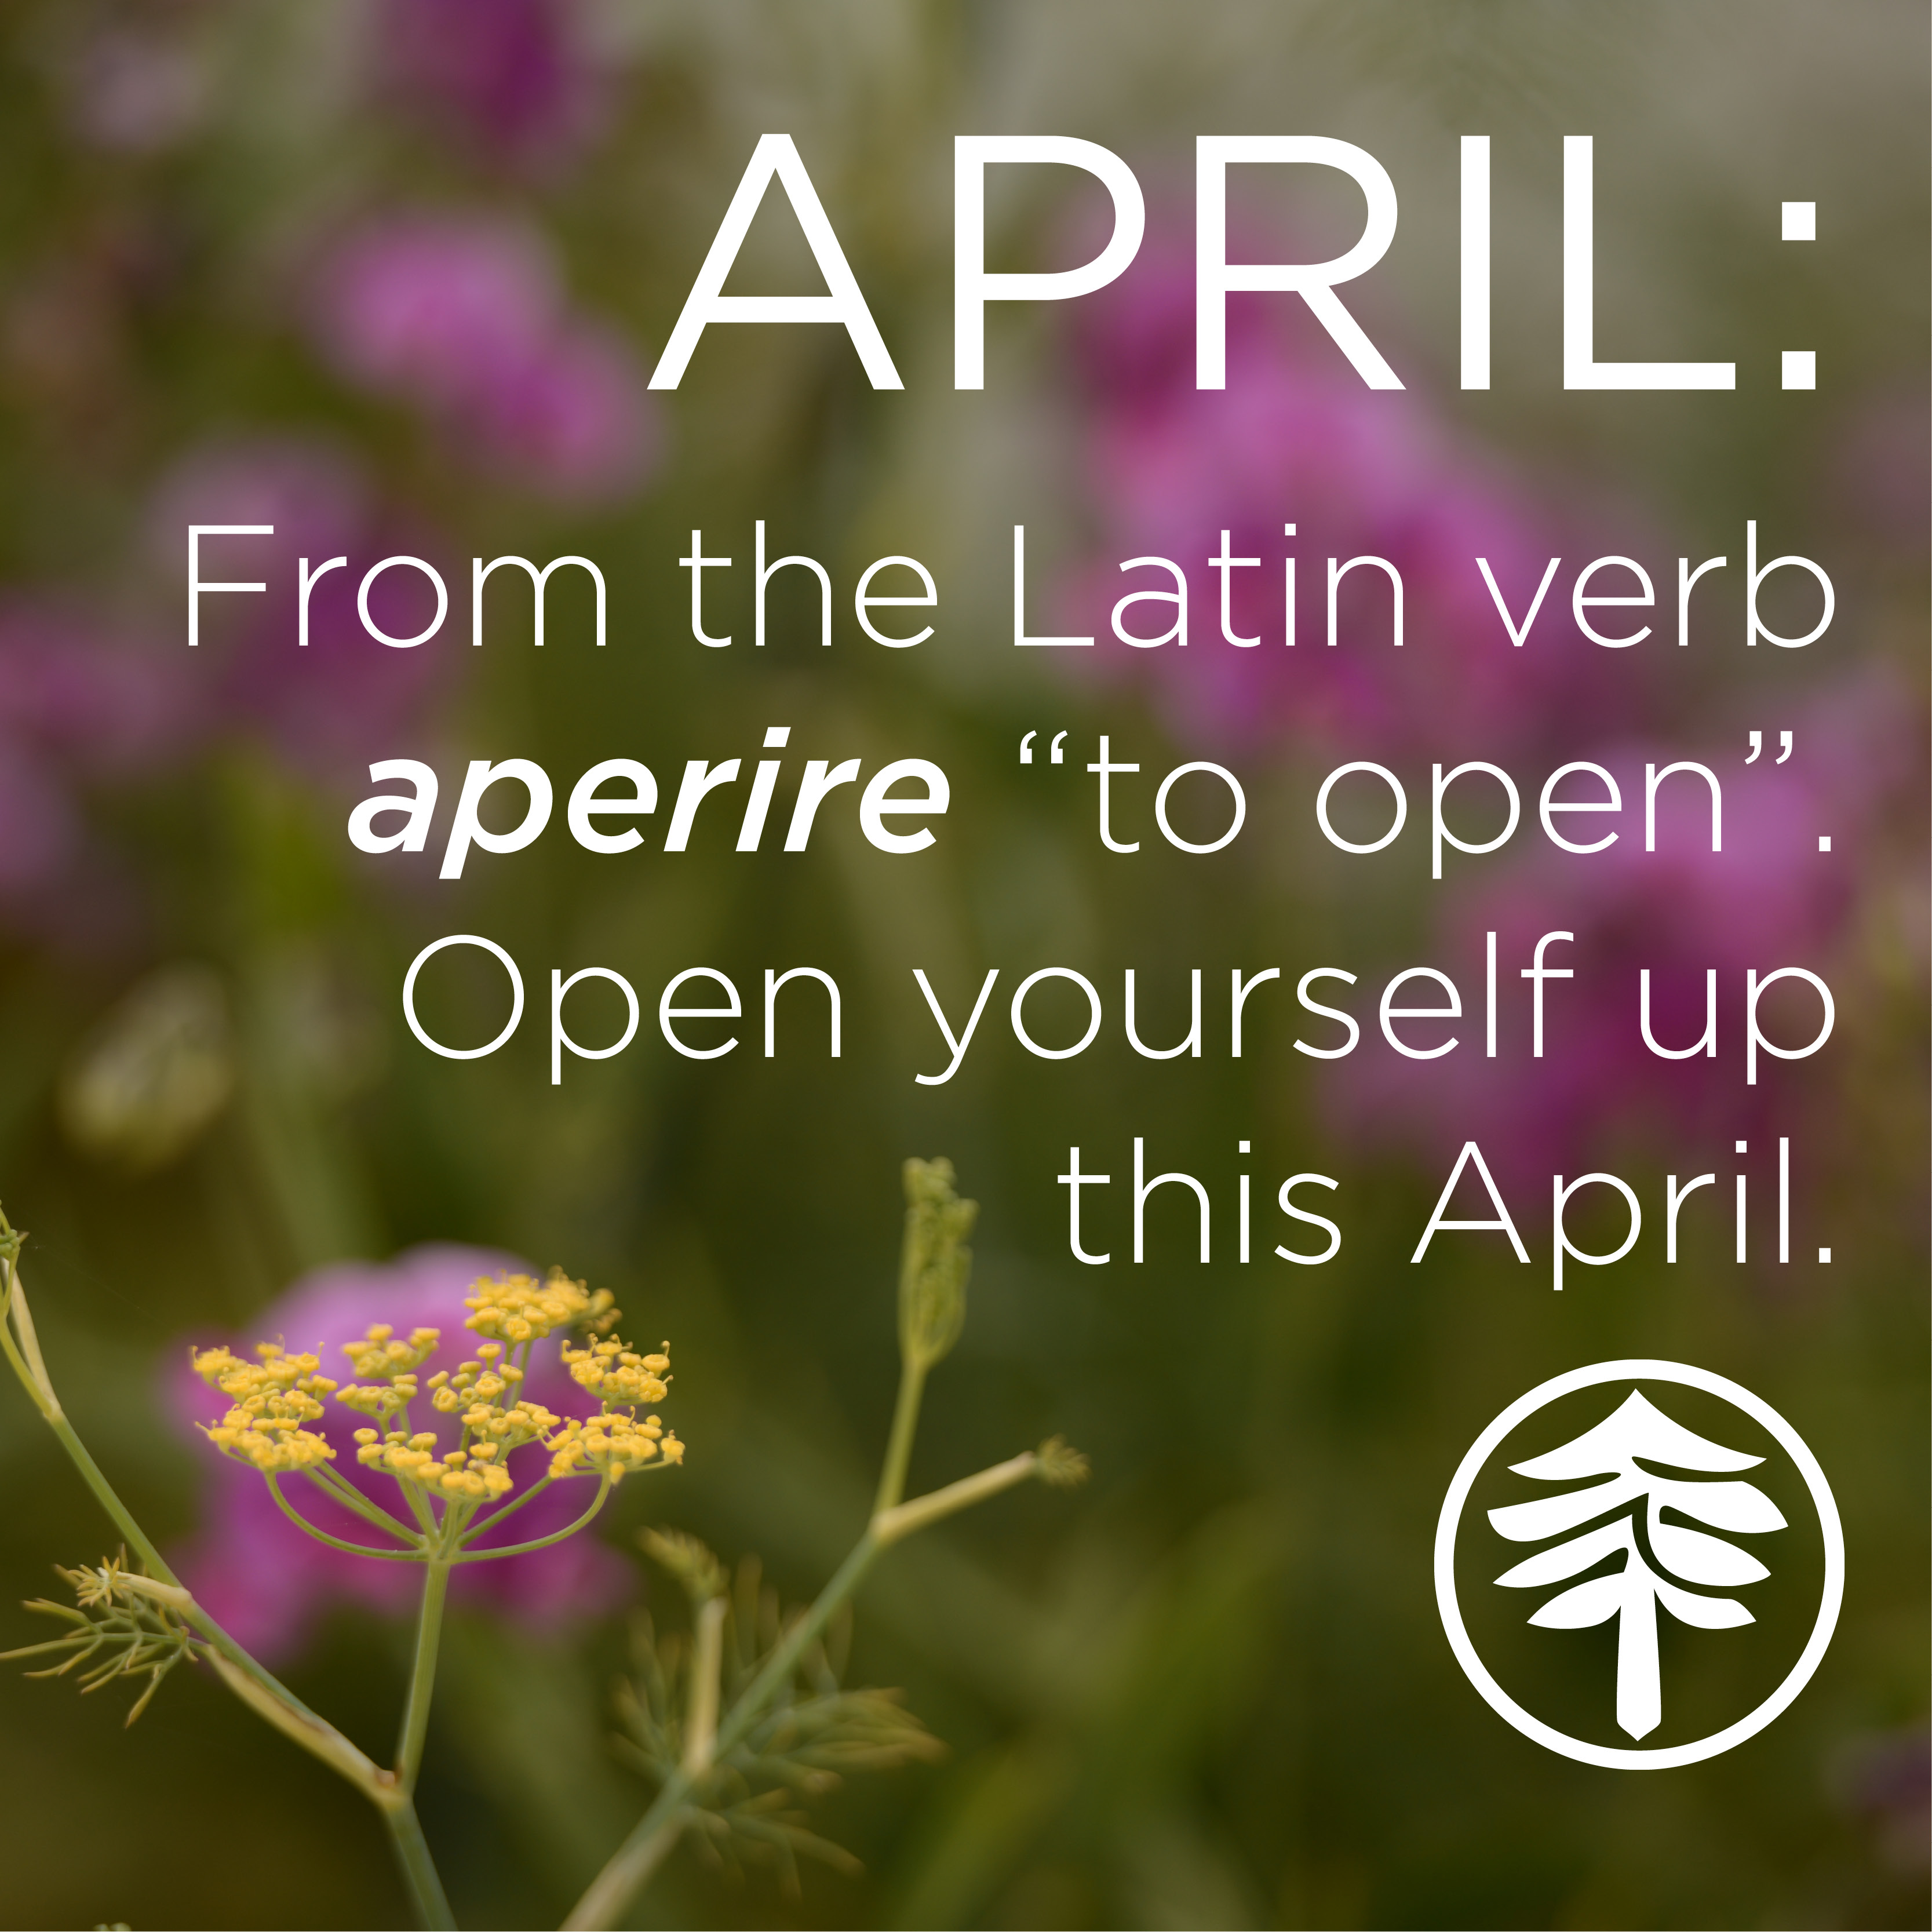 April Calendar Quotes : Welcome april quotes and sayings for calendars